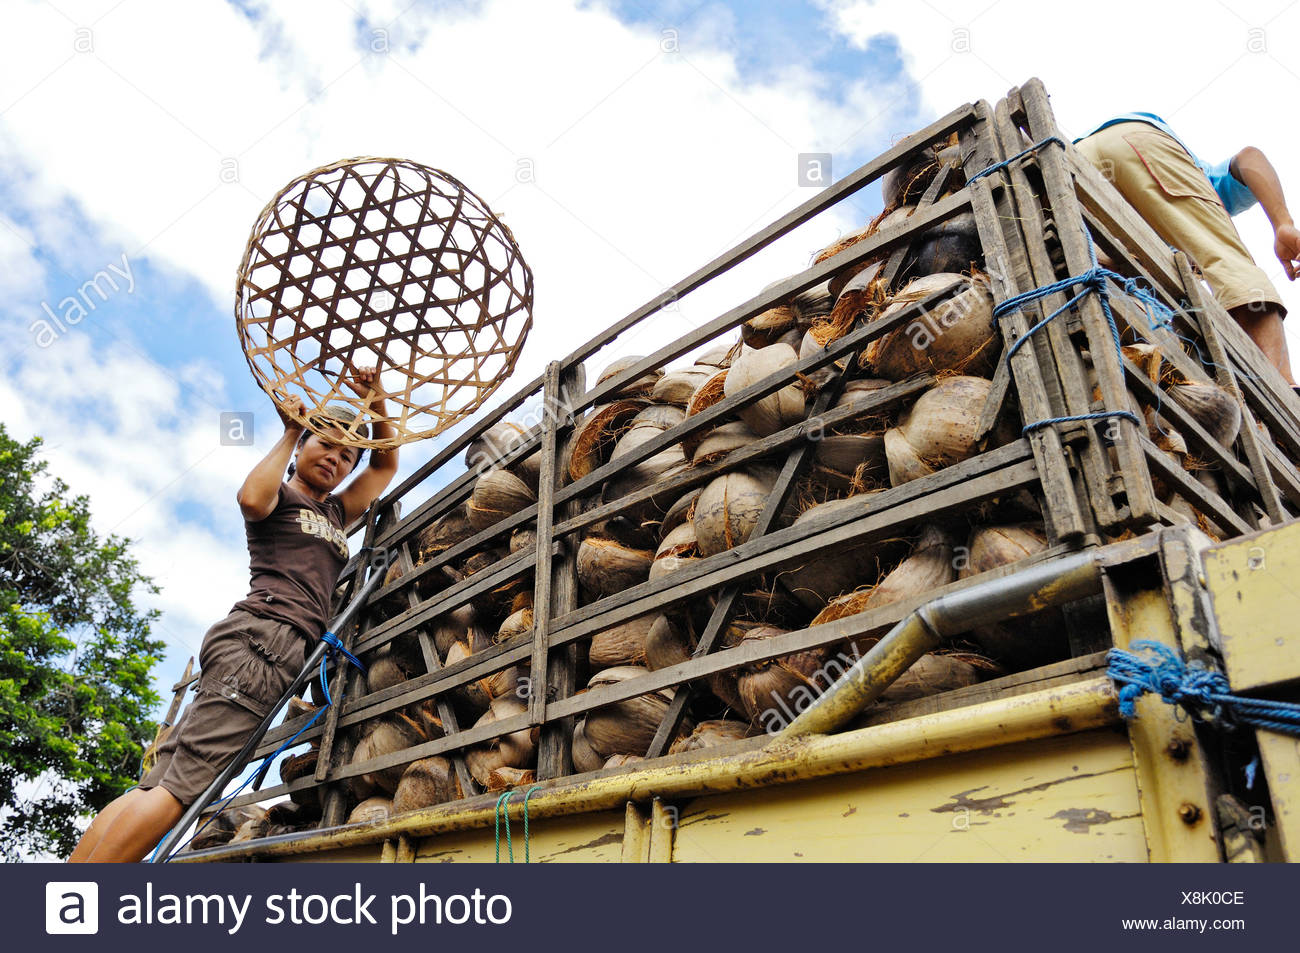 Lorry being loaded with coconut shells, near Rendang, Bali, Indonesia, South East Asia - Stock Image